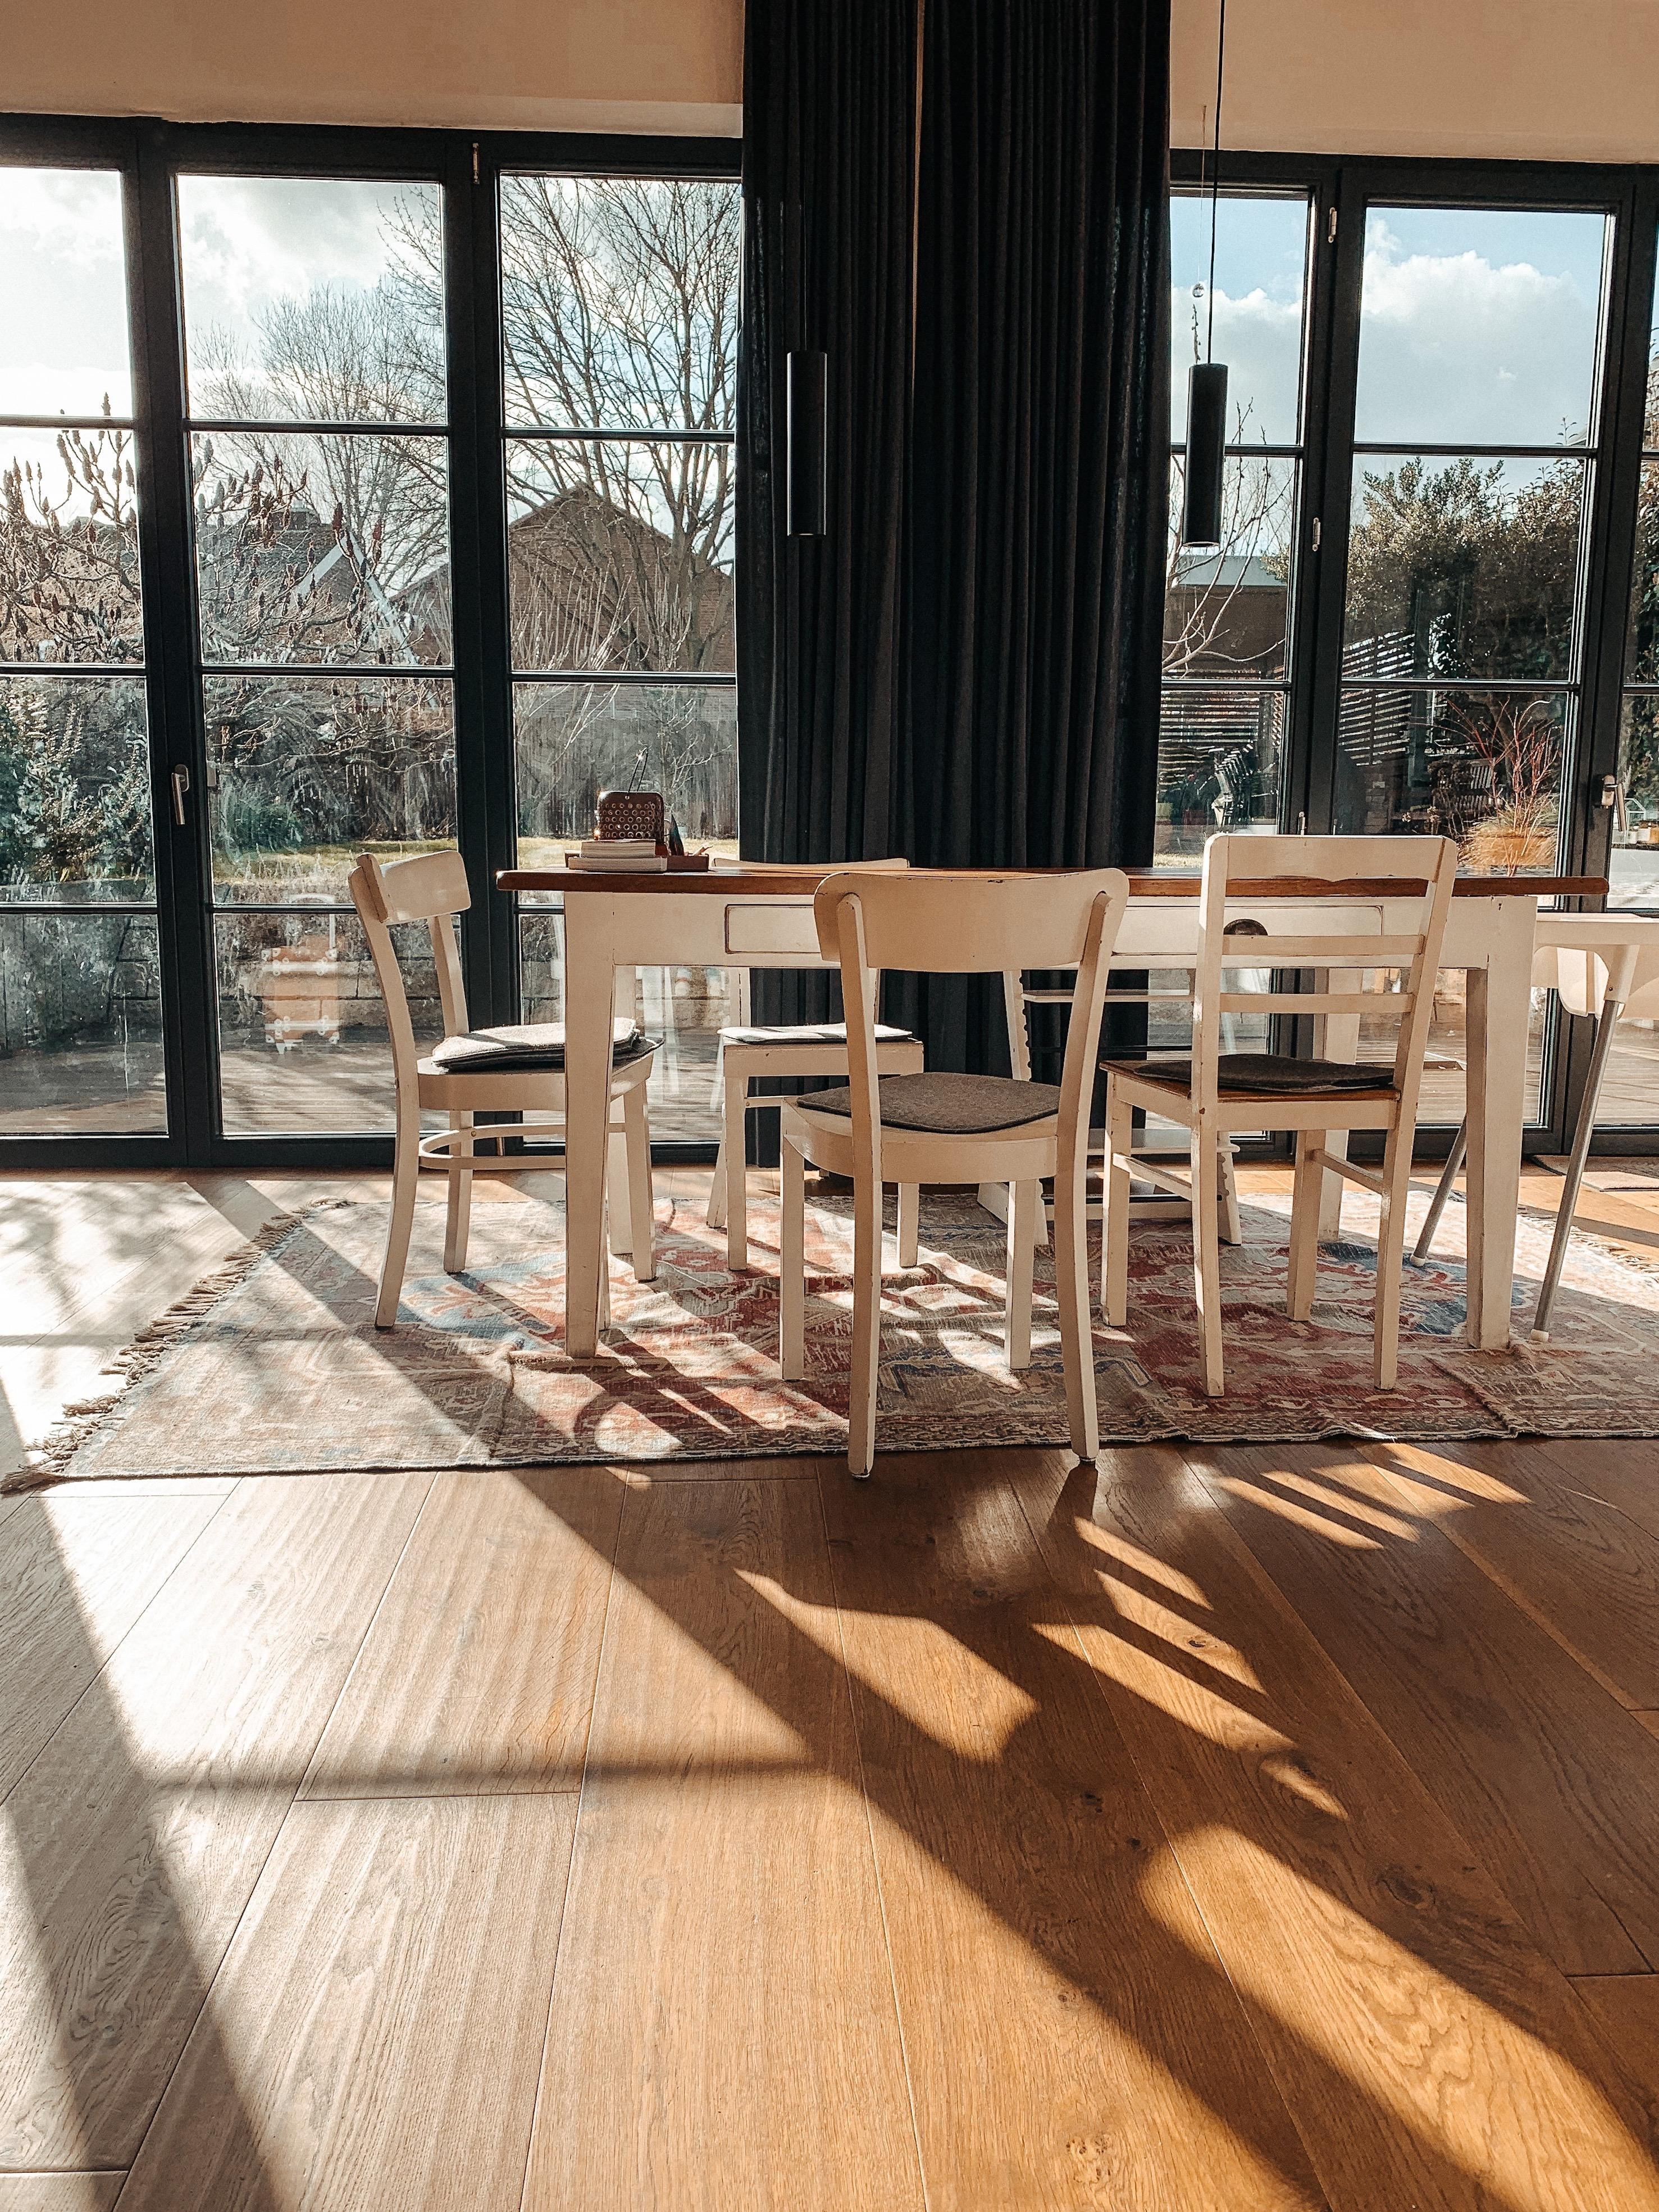 Sitting in the Sun #table #lunch #loft #interior